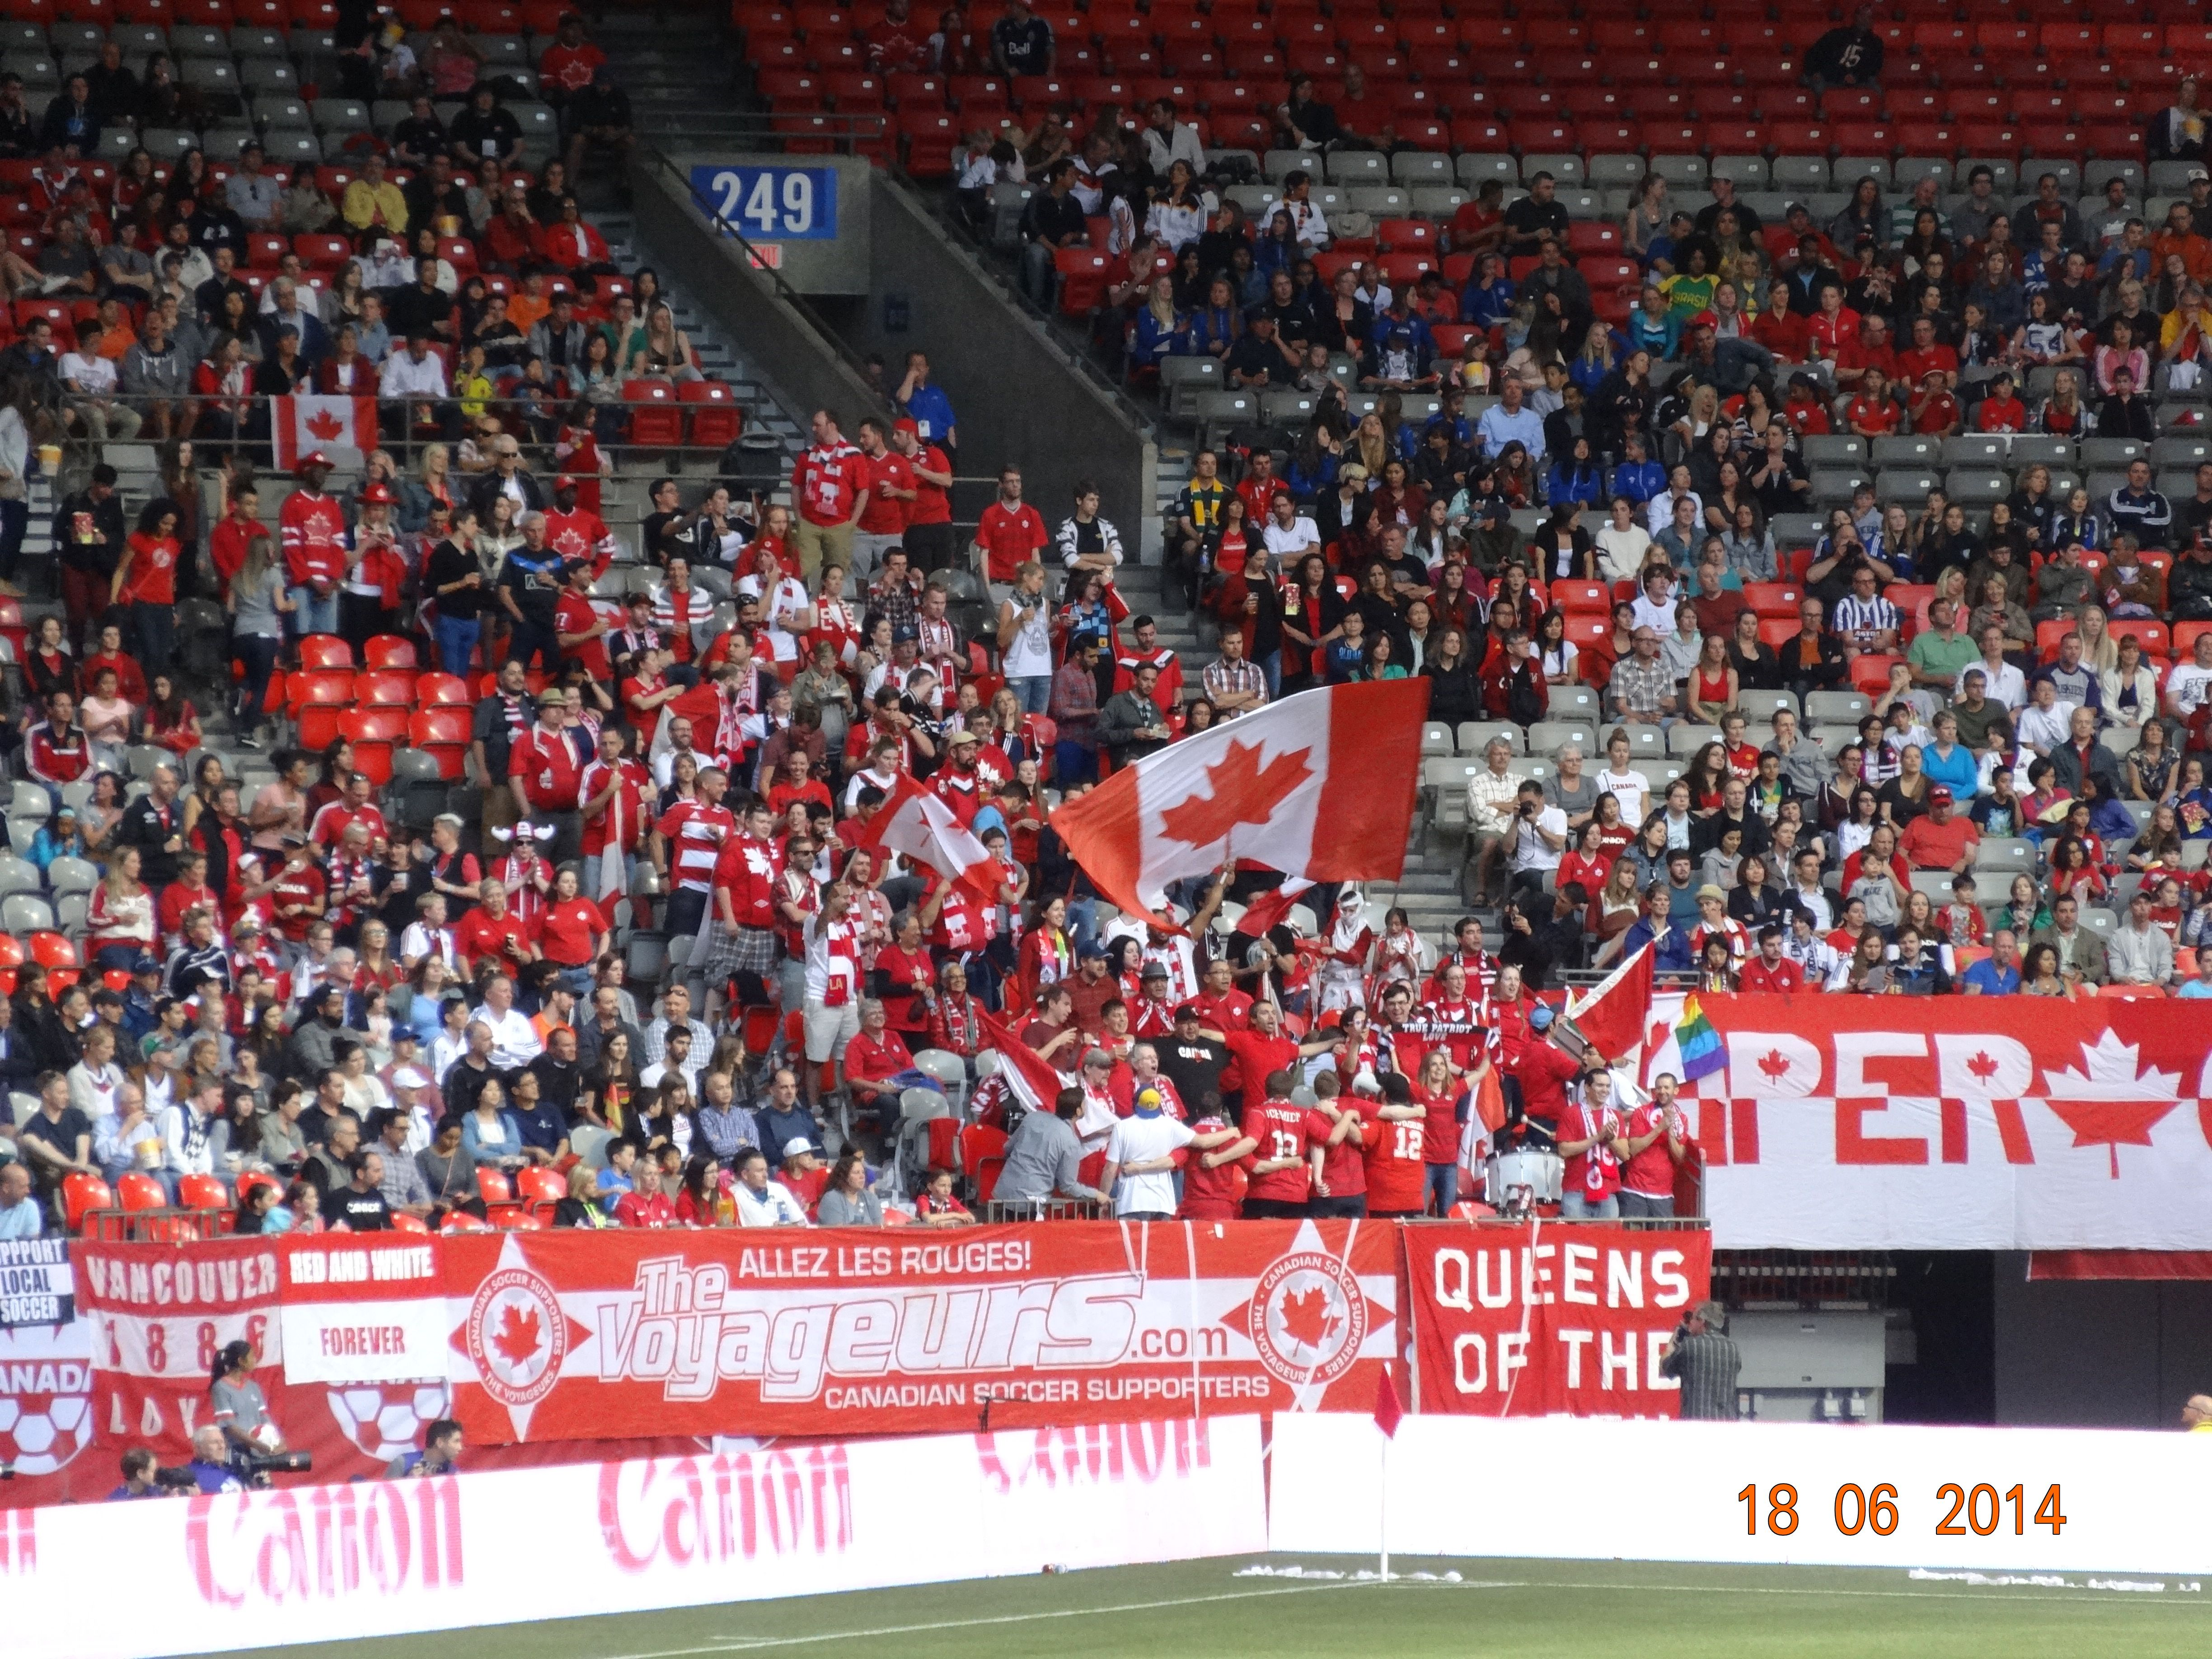 Canadian Fans at the Canada's Women's National Team vs Germany